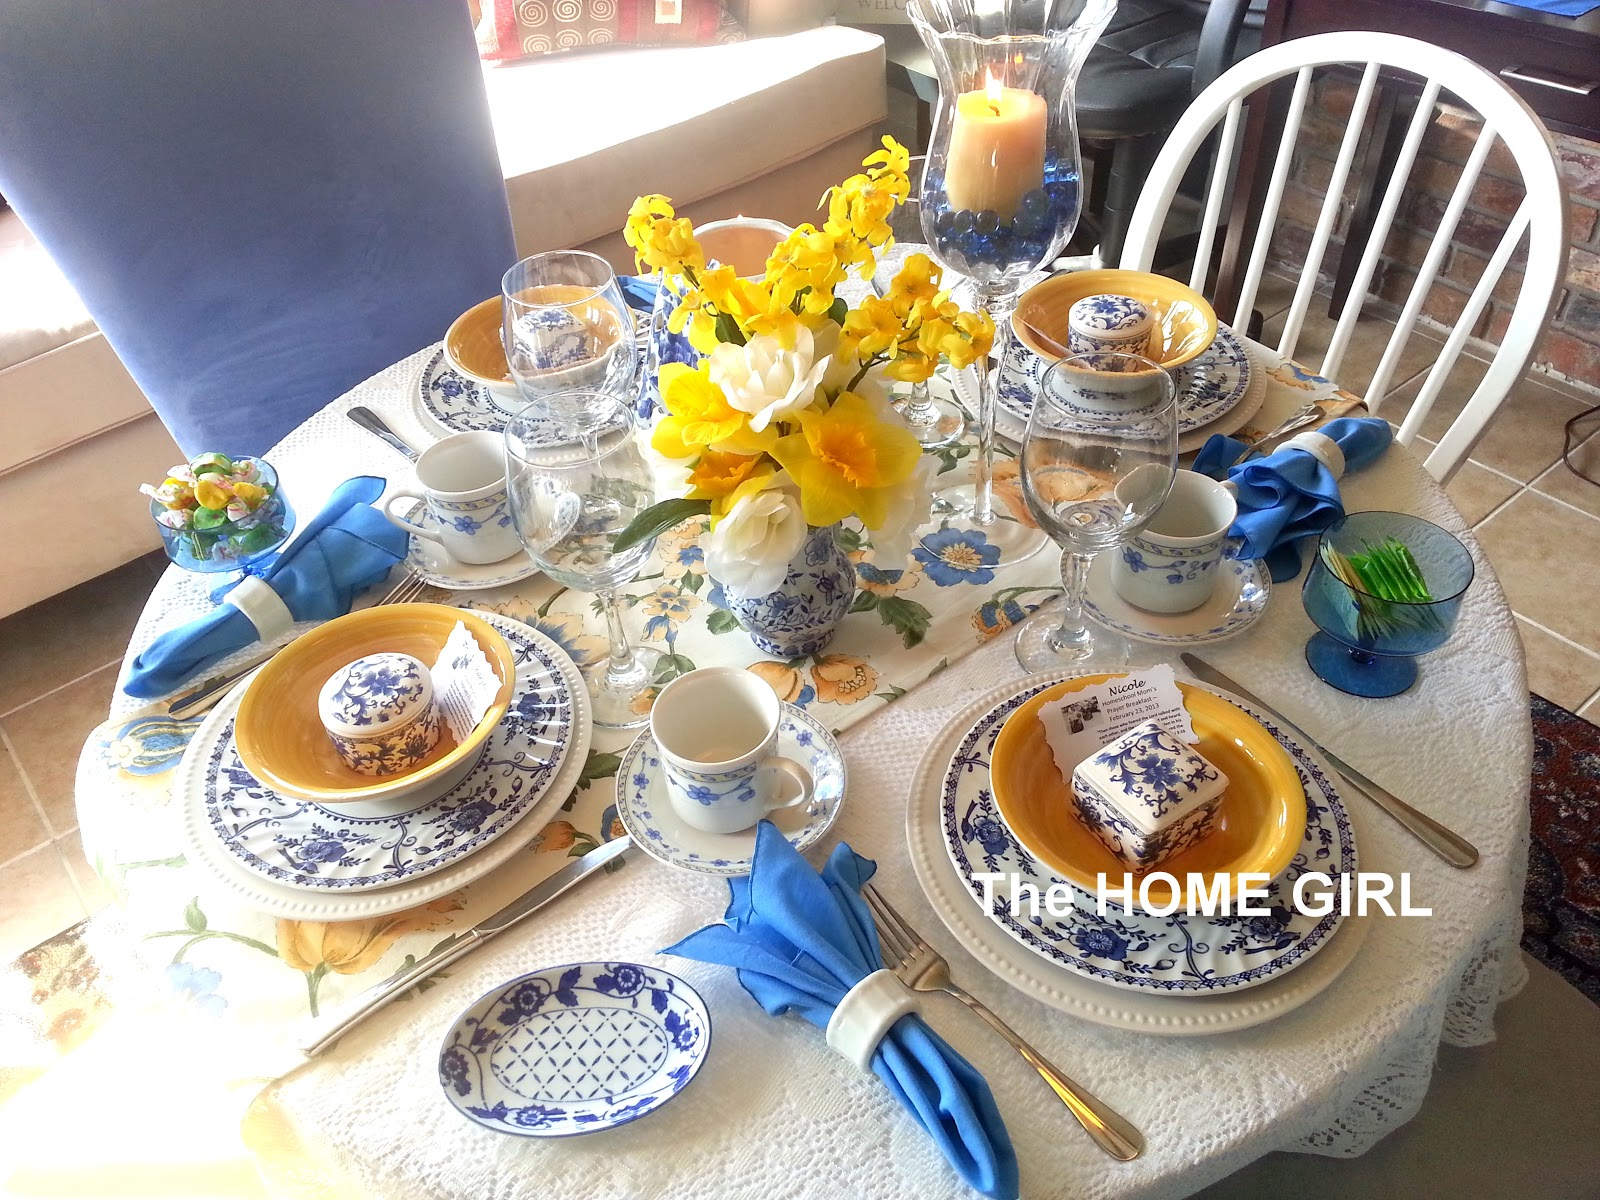 The home girl ladies prayer breakfast tablescape for Breakfast table decor ideas